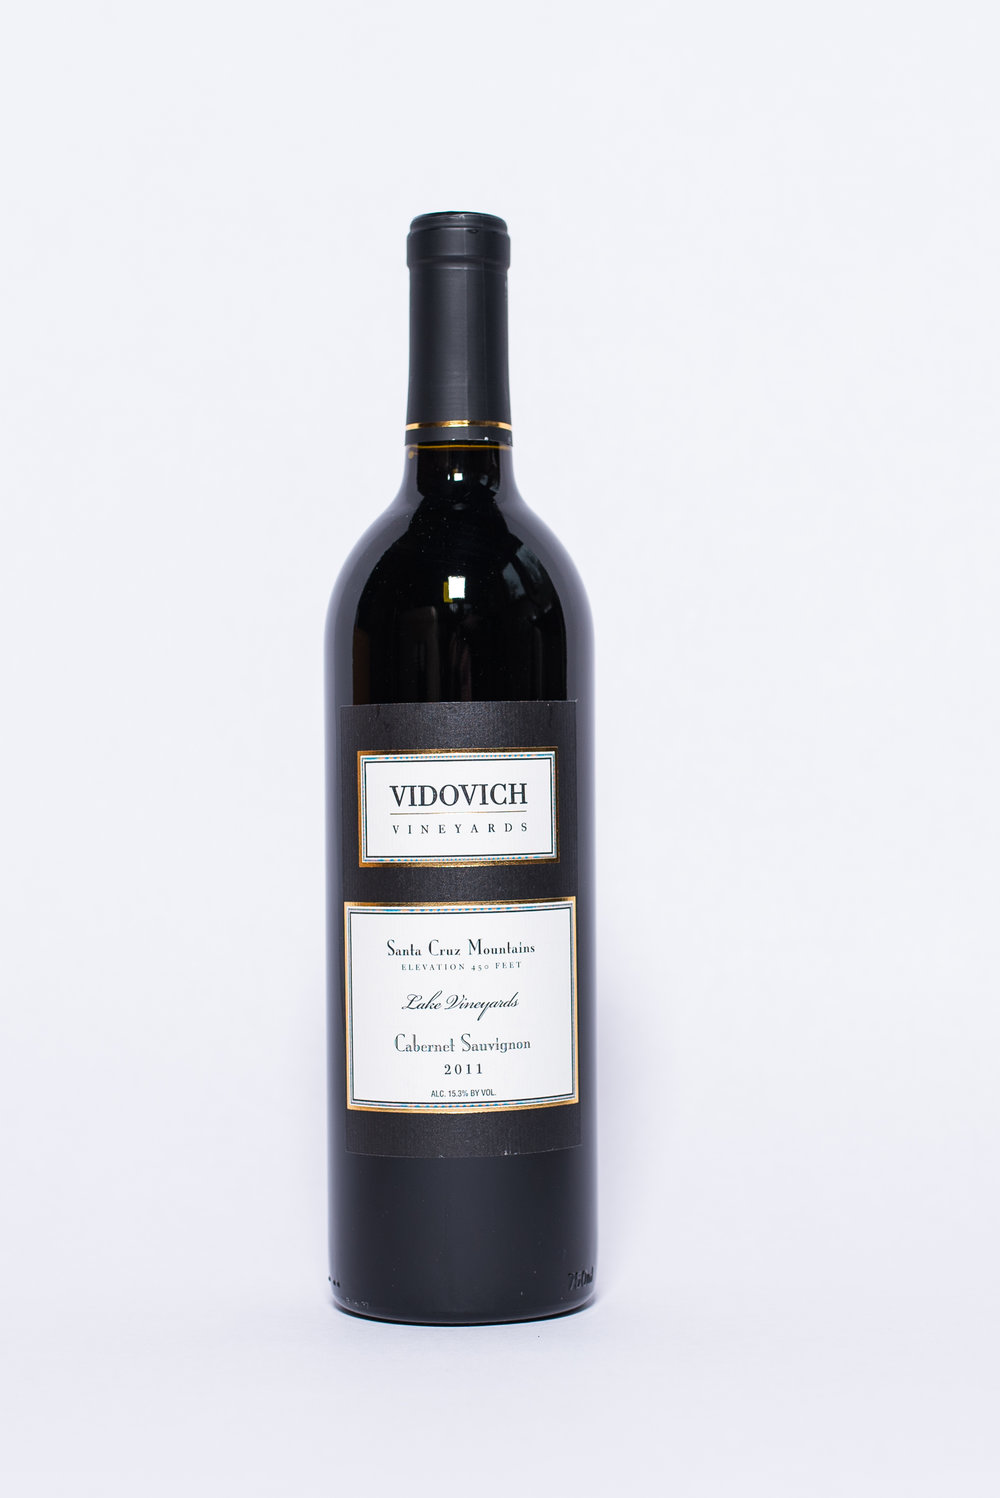 Vidovich Cabernet Sauvignon 2011    Producer:  Vidovich Vineyards   Region:  Santa Cruz  Grapes:  Cabernet Sauvignon  Characteristics:  Bell pepper aroma, hints of eucalyptus. This is a fully developed cab with moderate to mild tannin, good balance and medium body.